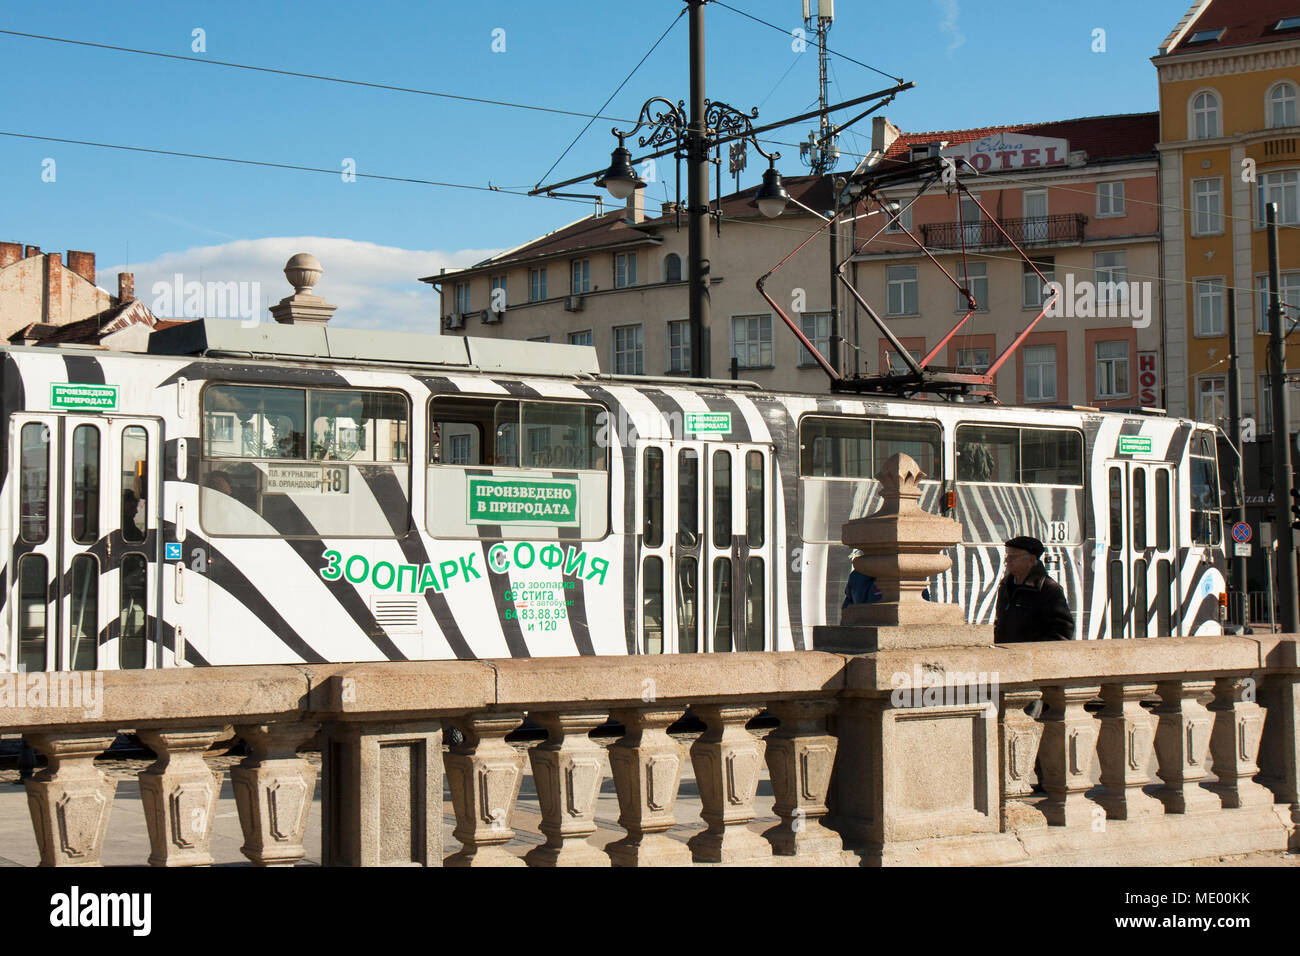 SOFIA, BULGARIA - OCTOBER 09, 2017: tram with advertizing of Sofia zoo - Stock Image